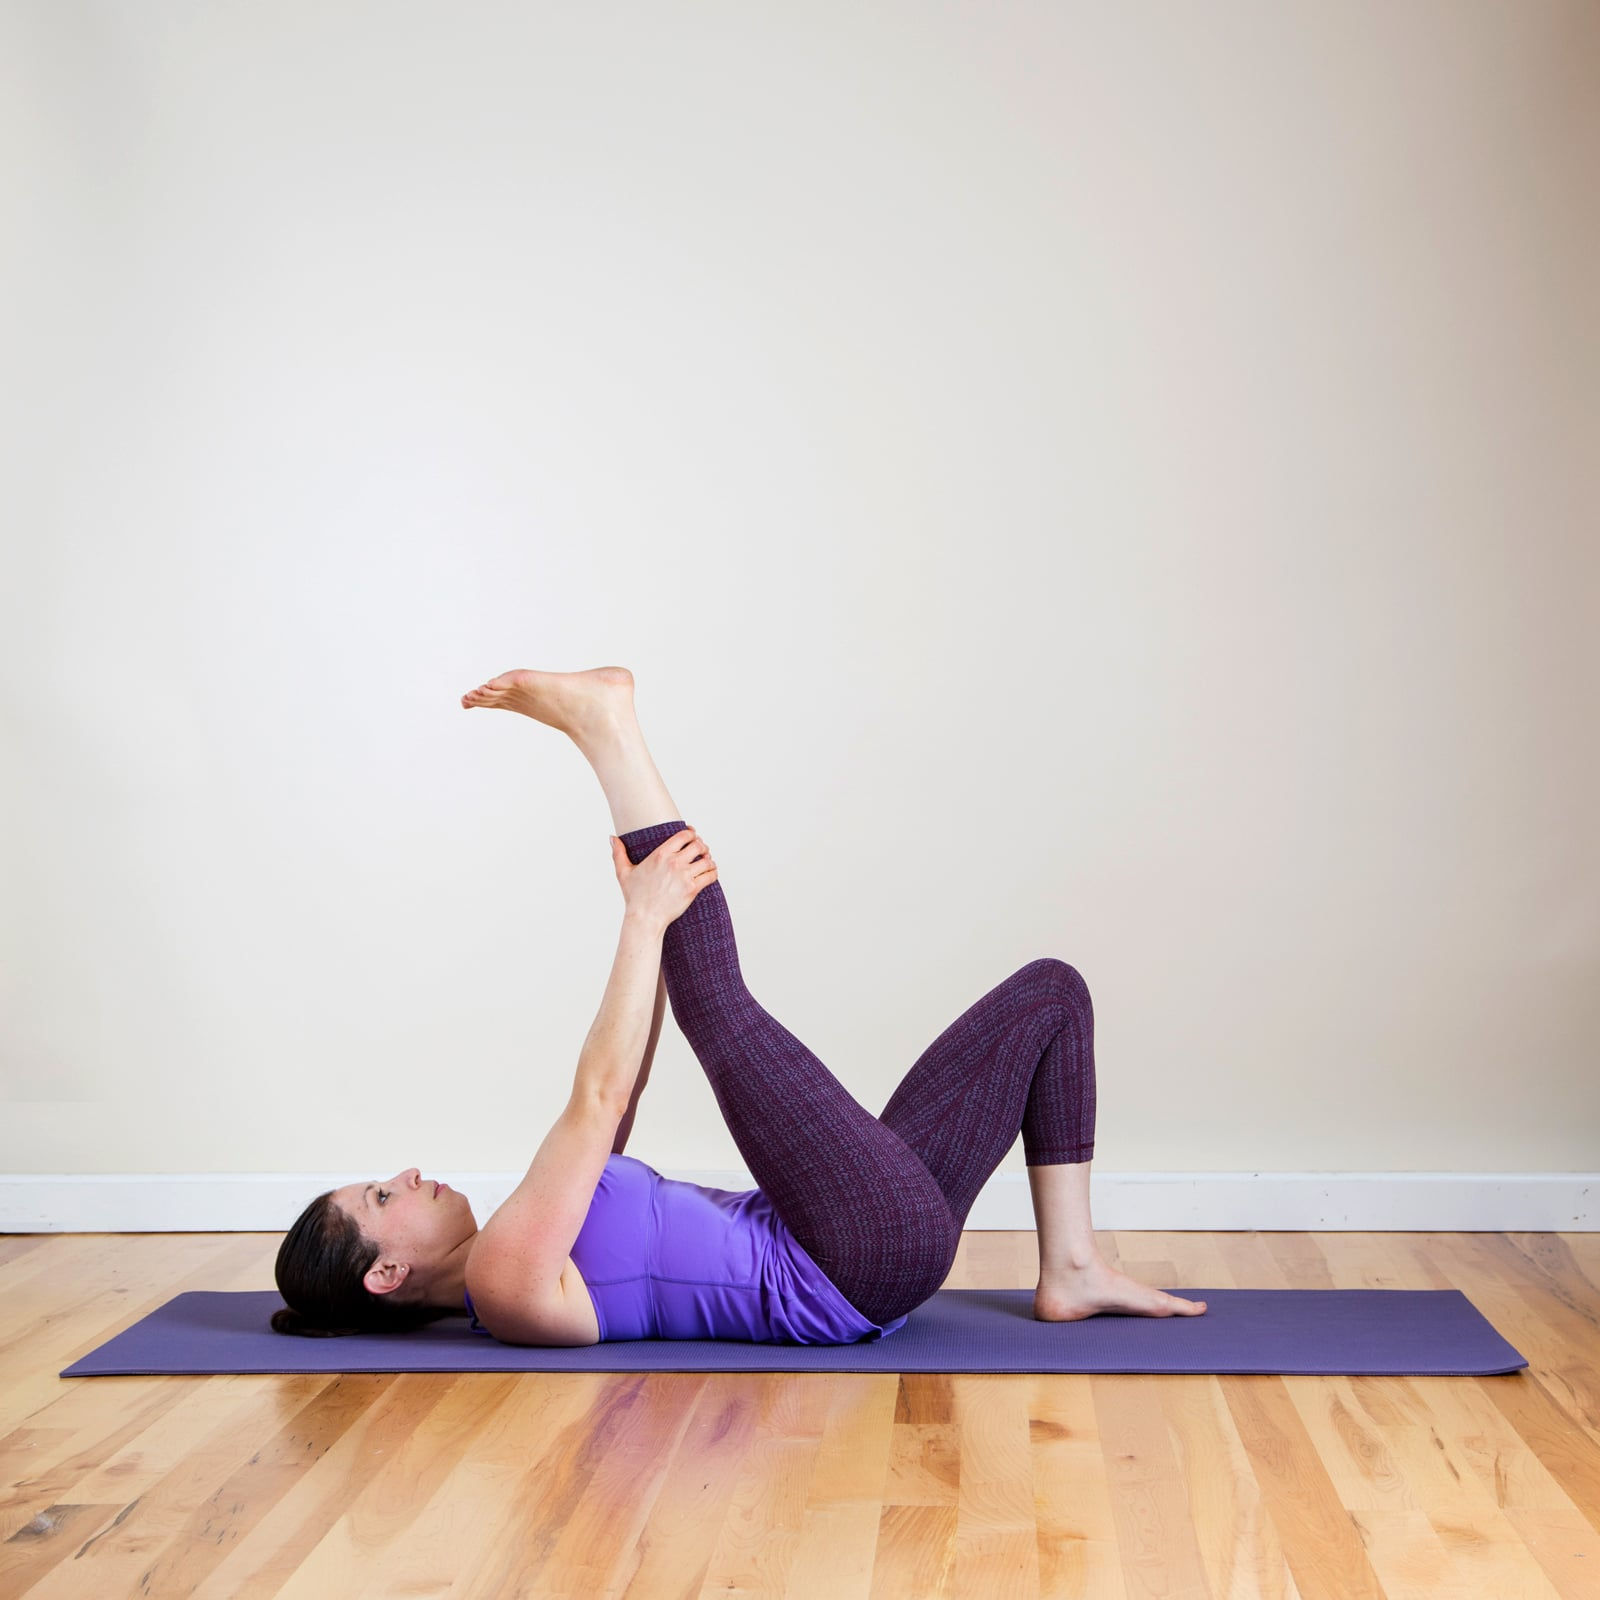 8 Stretches That Can Help Ease